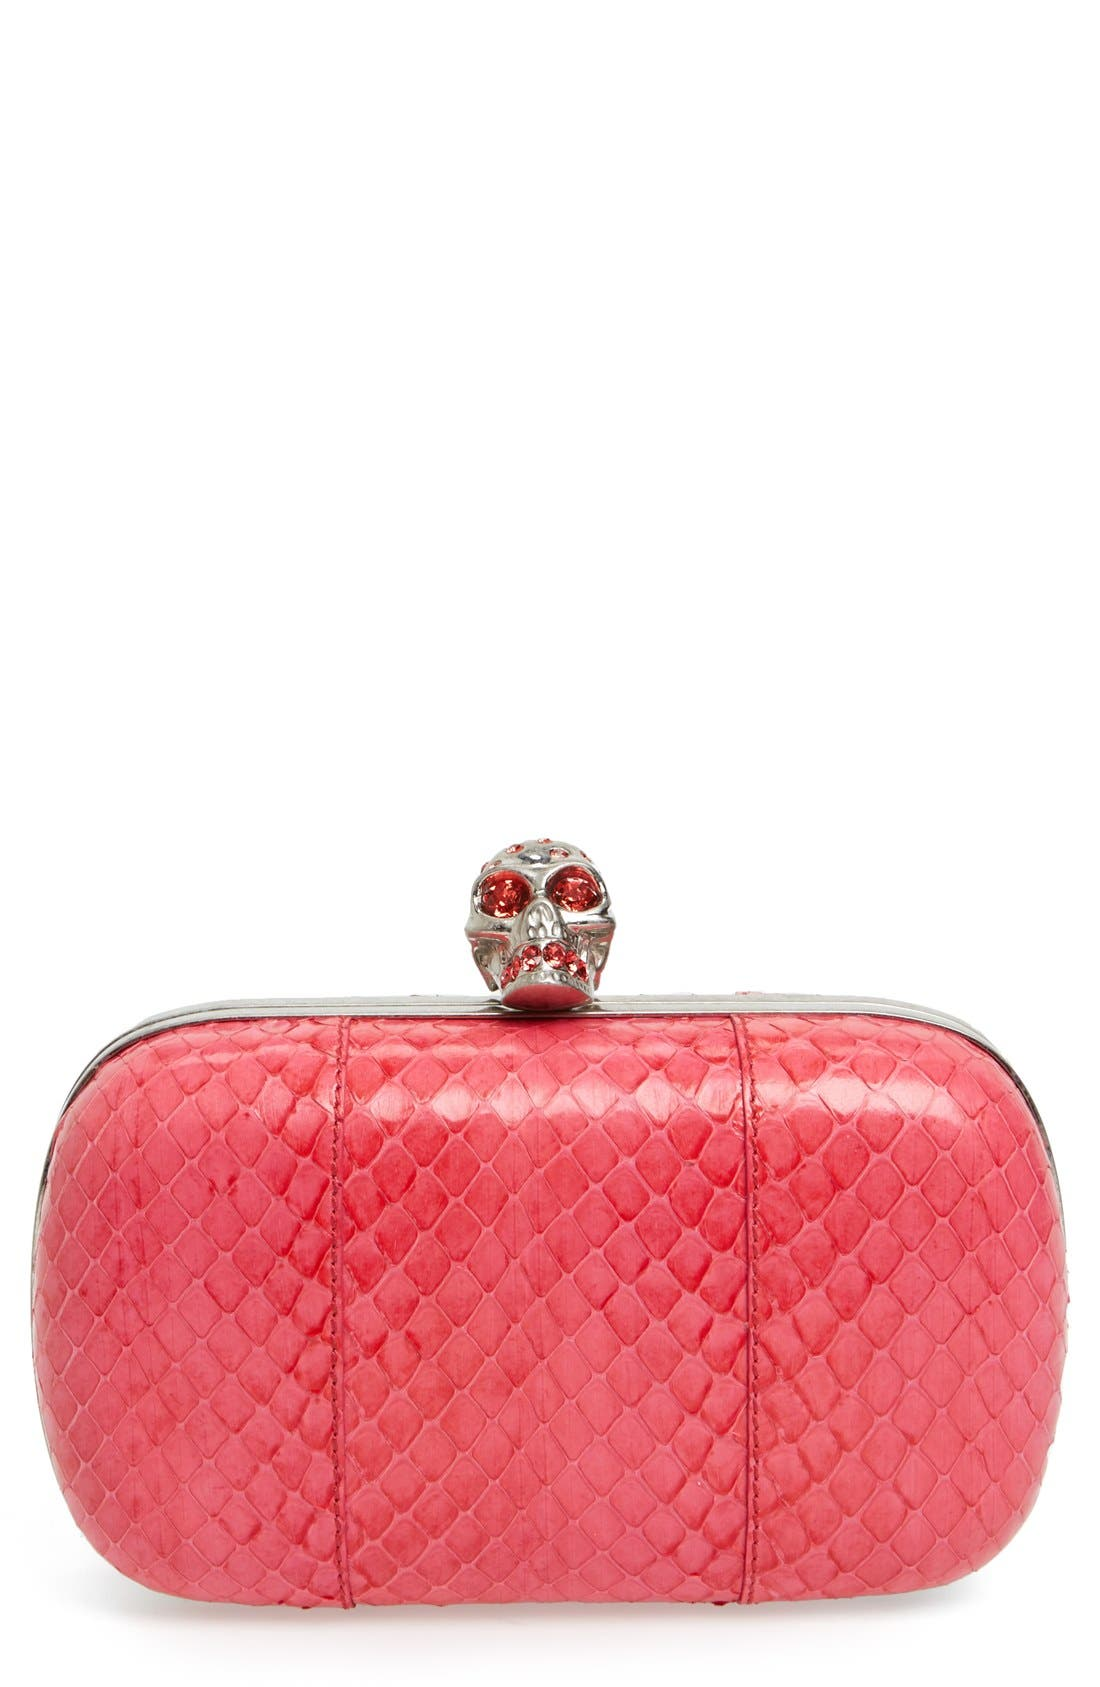 Alternate Image 1 Selected - Alexander McQueen 'Skull Nova Whip' Genuine Snakeskin Clutch